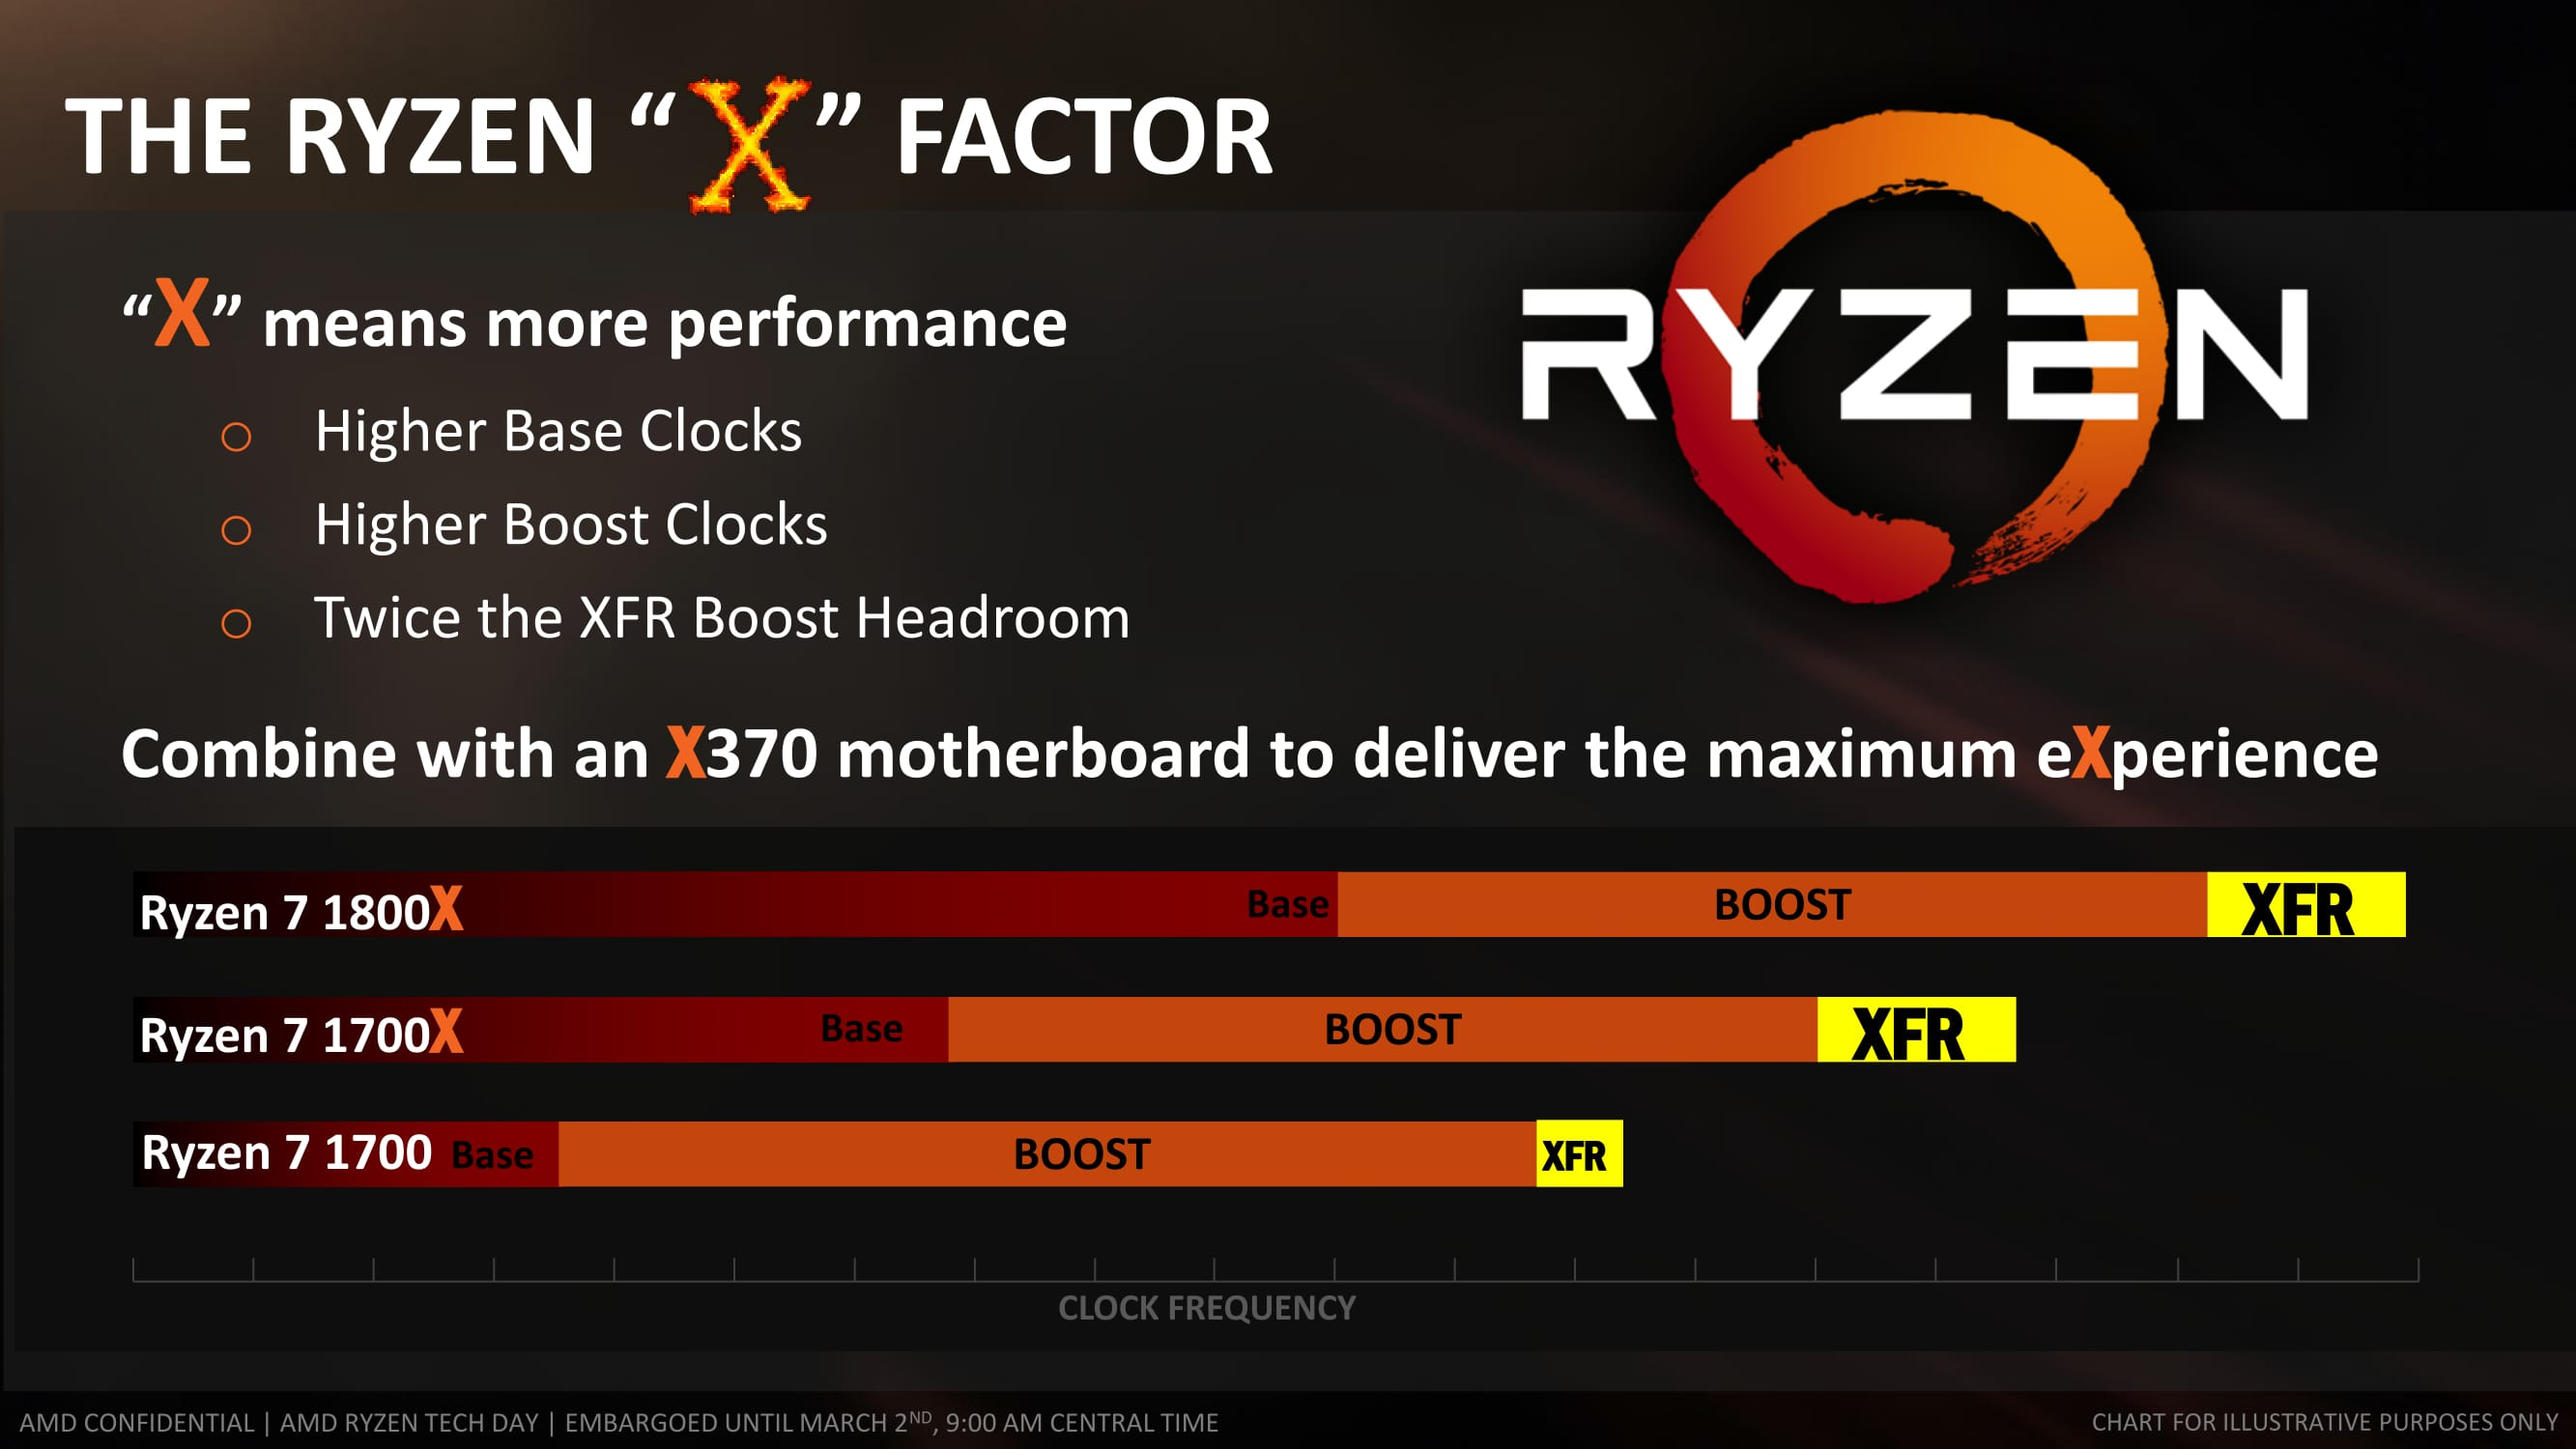 AMD%20Ryzen%207%20Press%20Deck-11.jpg